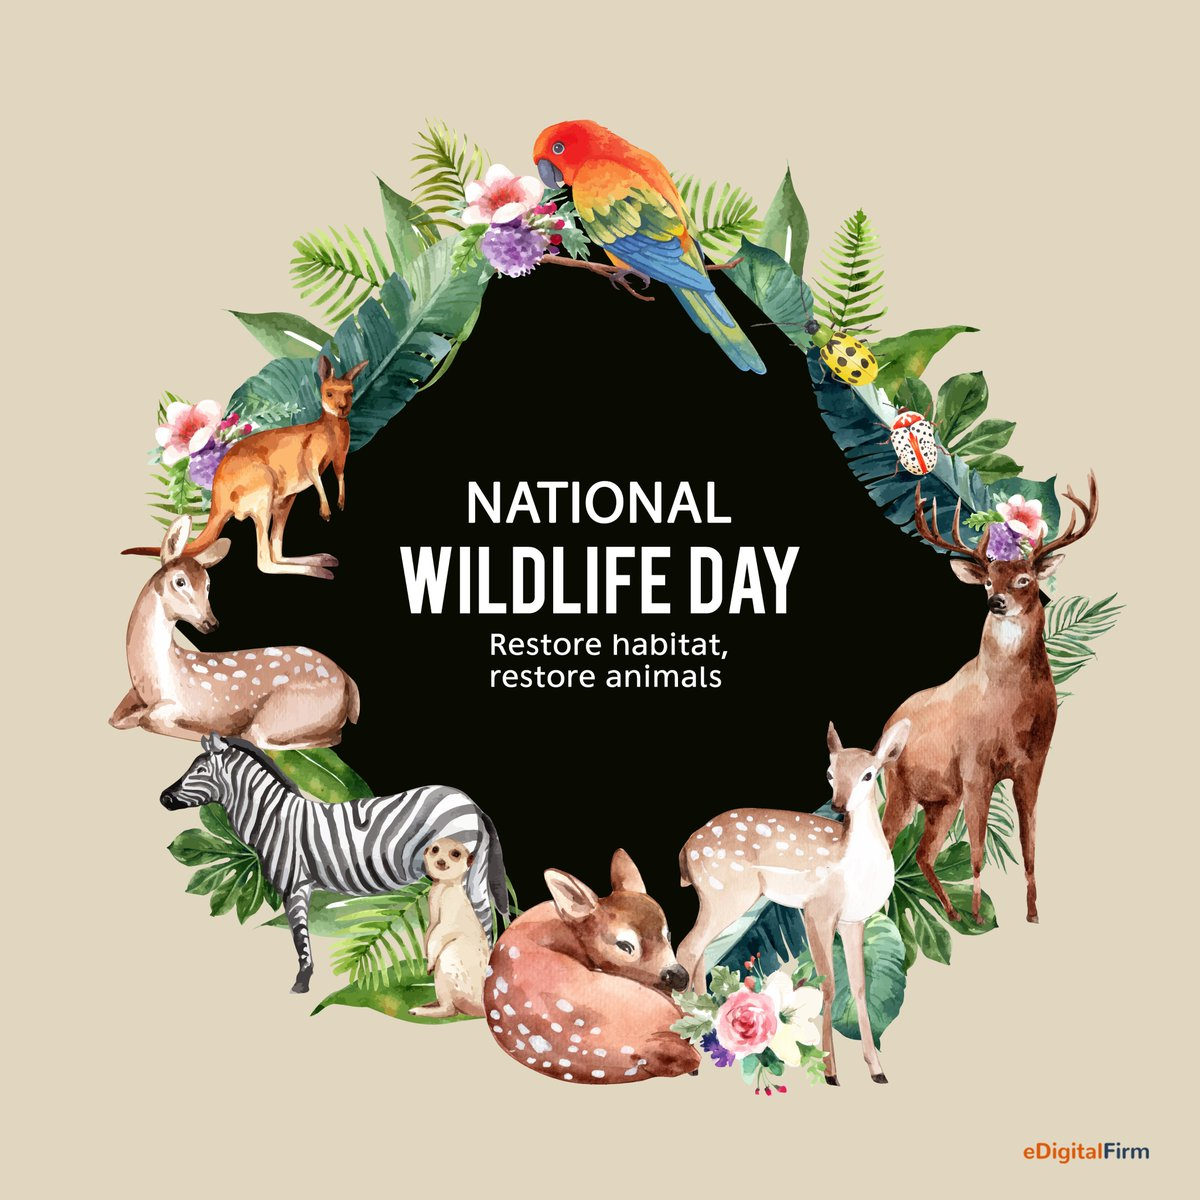 """The theme of World Wildlife Day 2020, """"Sustaining all life on Earth"""", encompasses all wild animal and plant species as a component of biodiversity. #WorldWildlifeDay #indianwildlife #wild #wildlife #wildlifeday #nature #worldwildlifeday2020 #wildlifephotography #edigitalfirm https://t.co/7fWYyrqKez"""